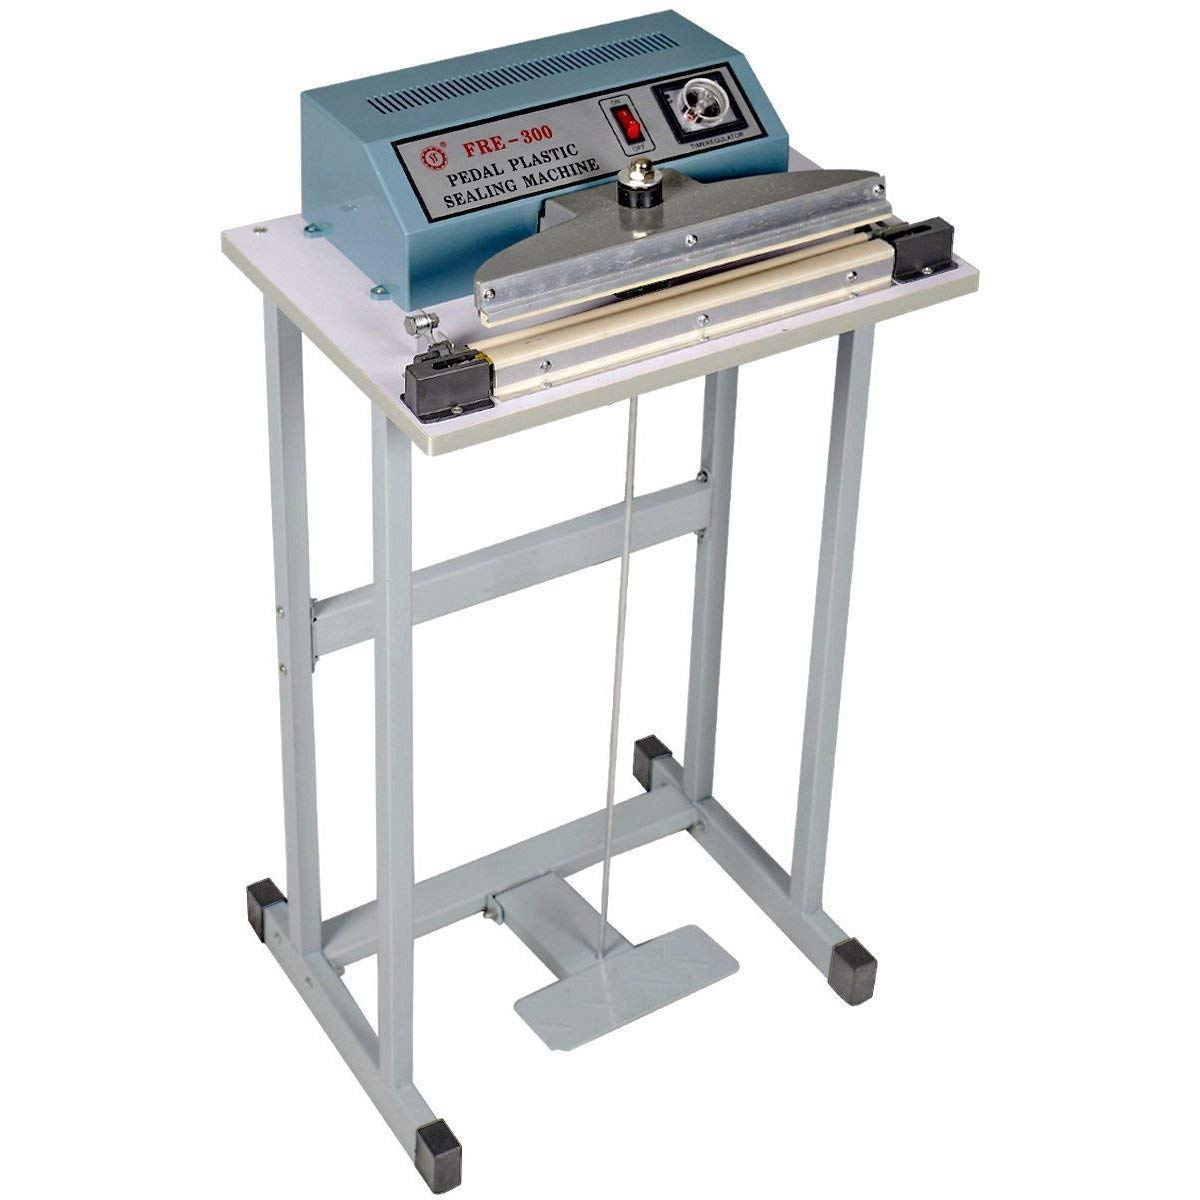 """Zimtown 12"""" Foot Pedal Impulse Sealer, 110V Feet Operated Heat Sealing Machine for Closing Plastic Bag, Food Saving, Good for Inductrical and Commercial Application"""